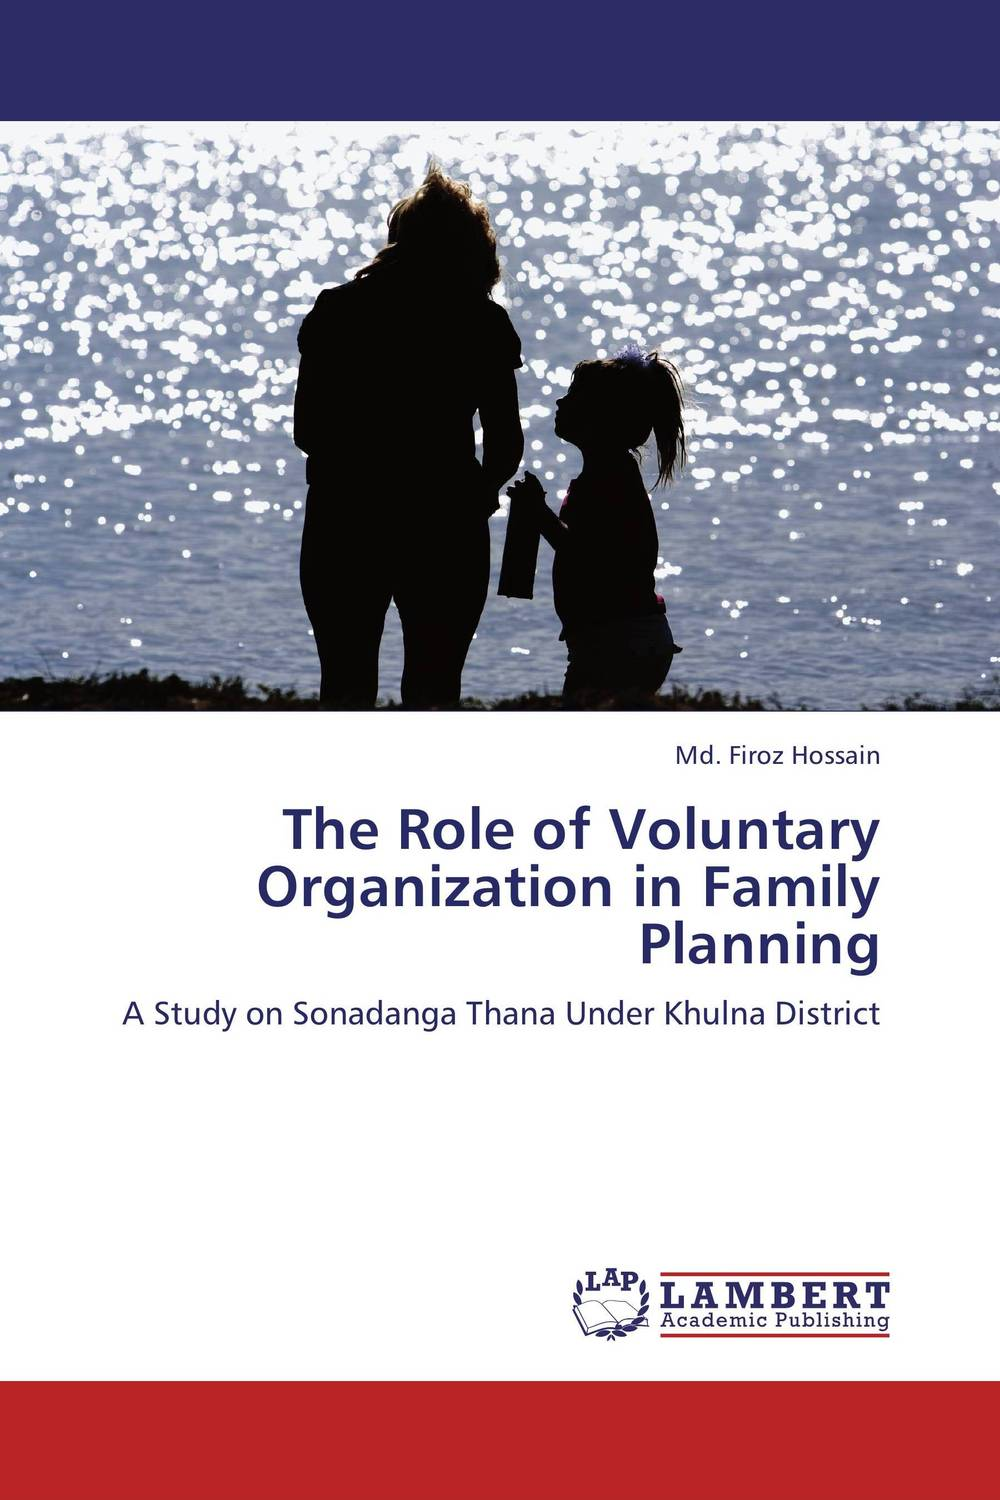 The Role of Voluntary Organization in Family Planning assessing family planning decision